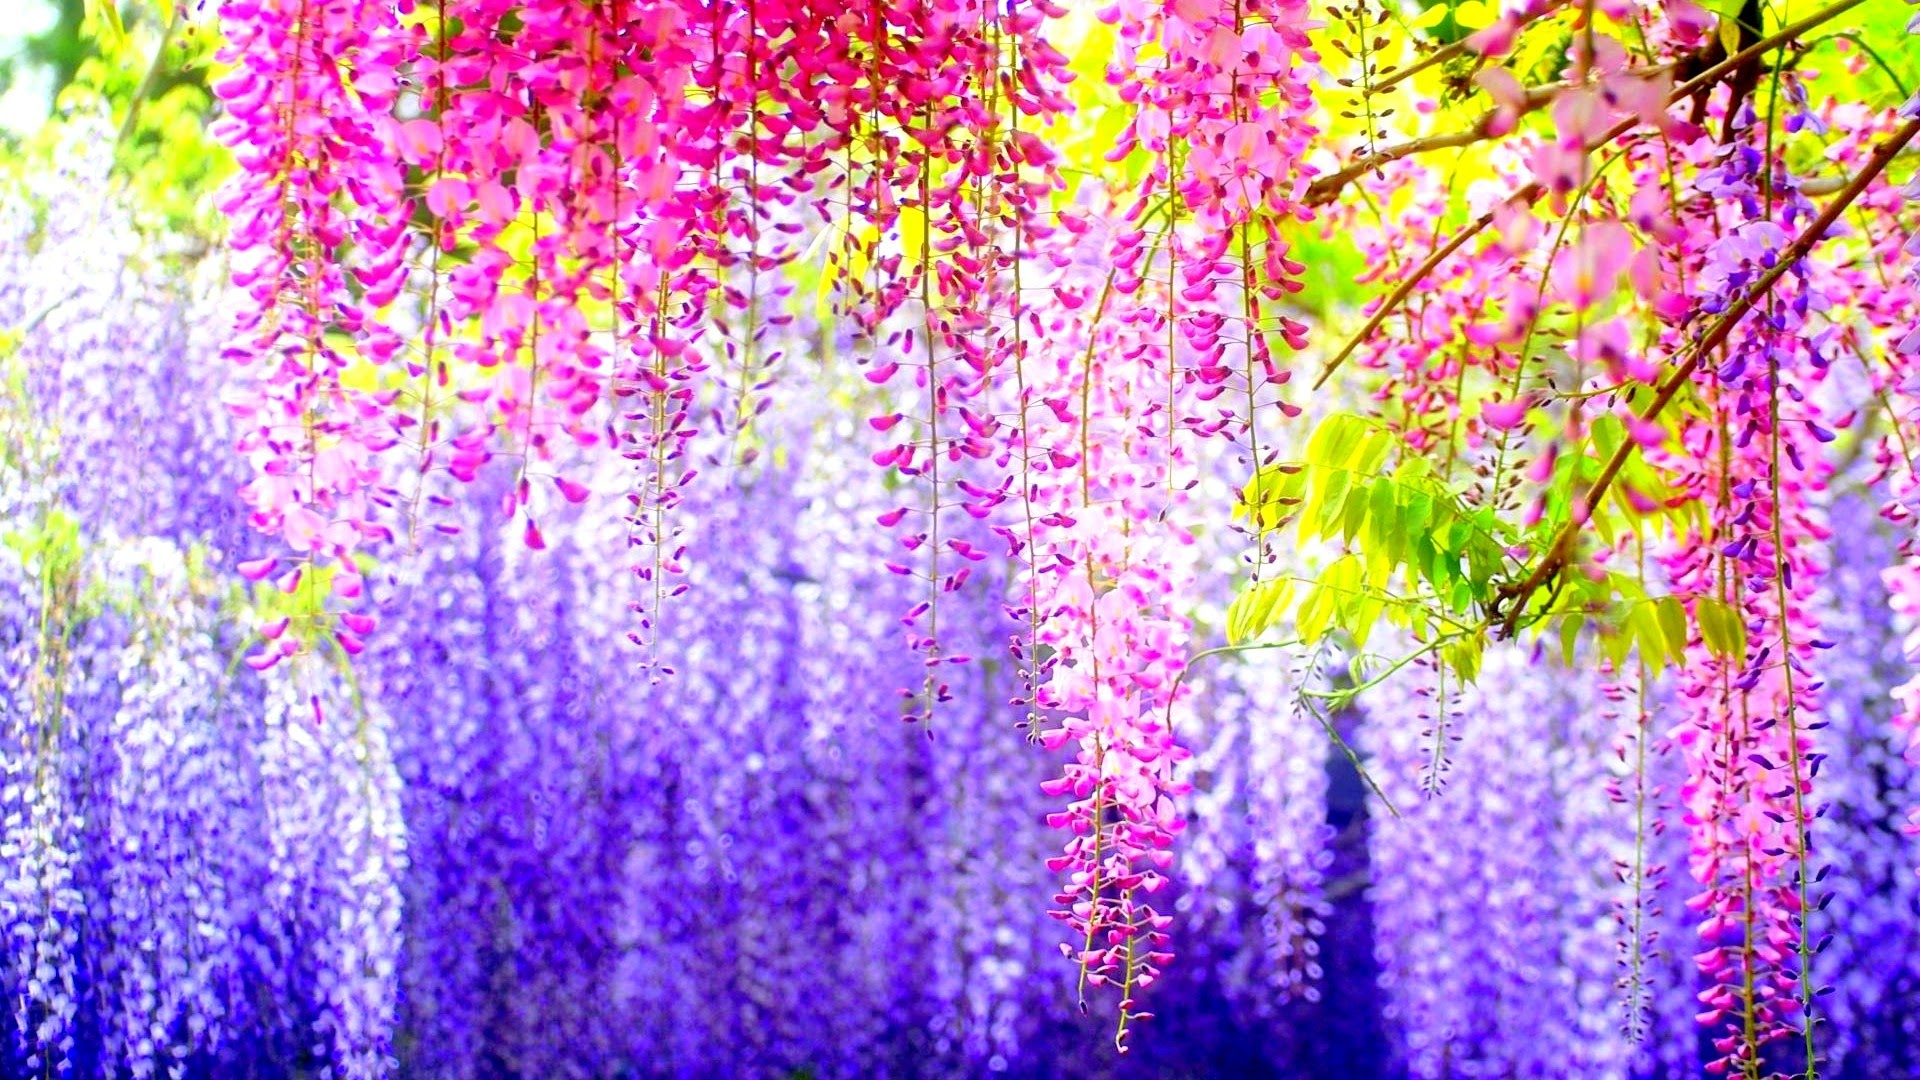 Spring Flowers Live Wallpaper Android Apps On Google Play 1920x1080